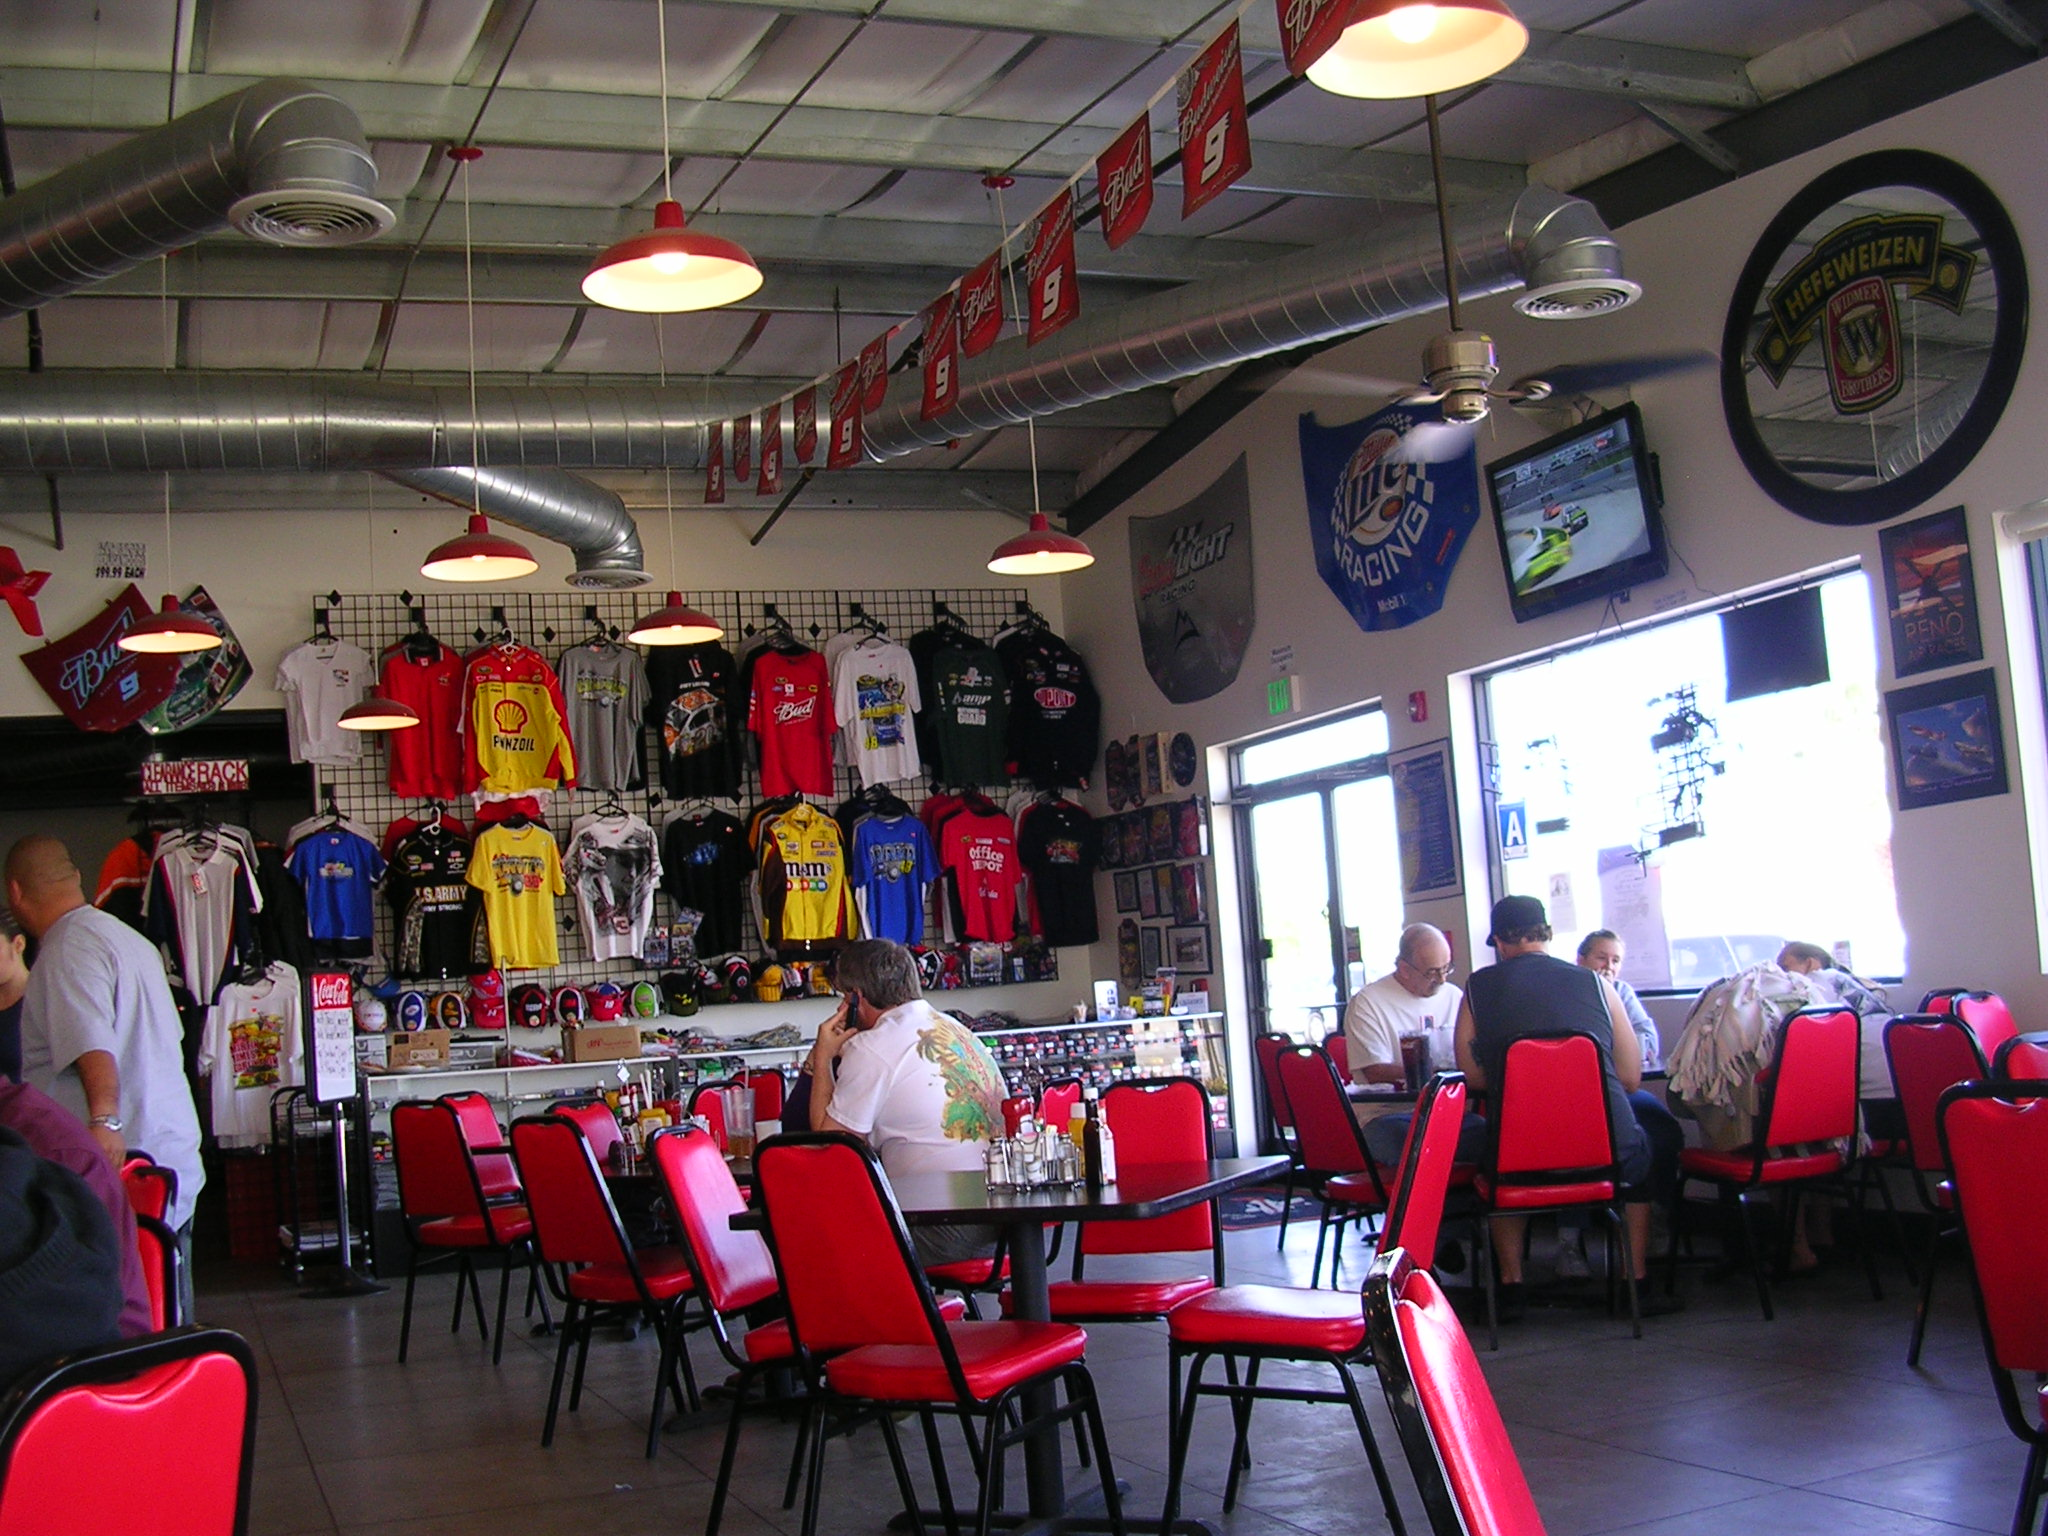 Another view of the restaurant